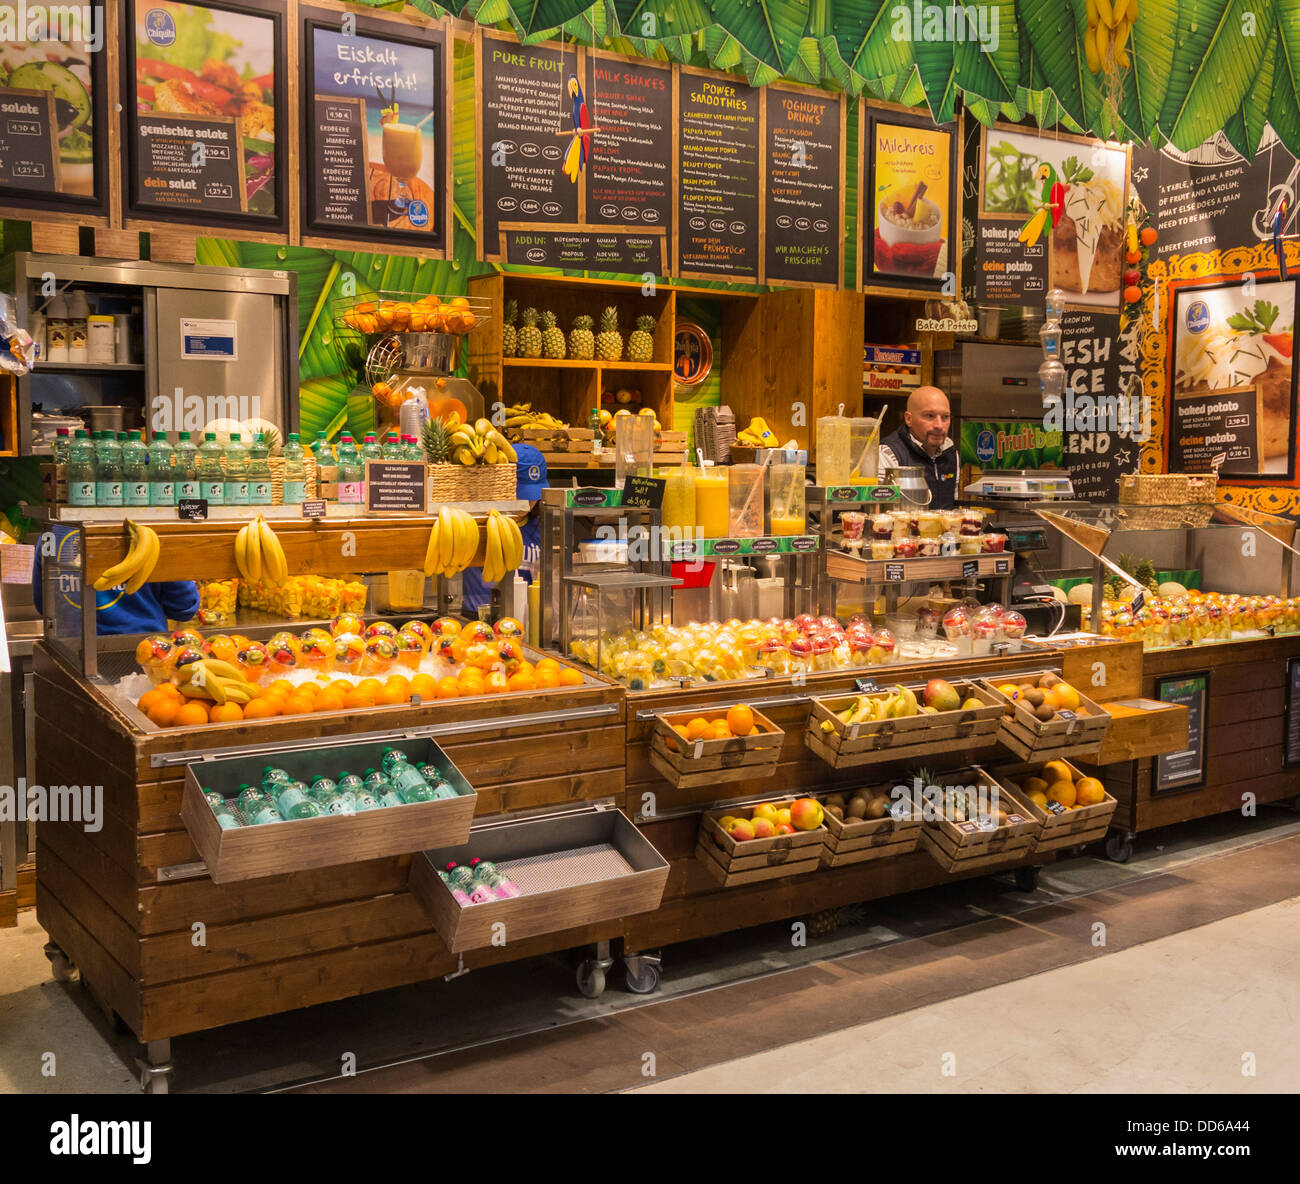 Juice Bar Stuttgart Germany Stock Photo 59761300 Alamy